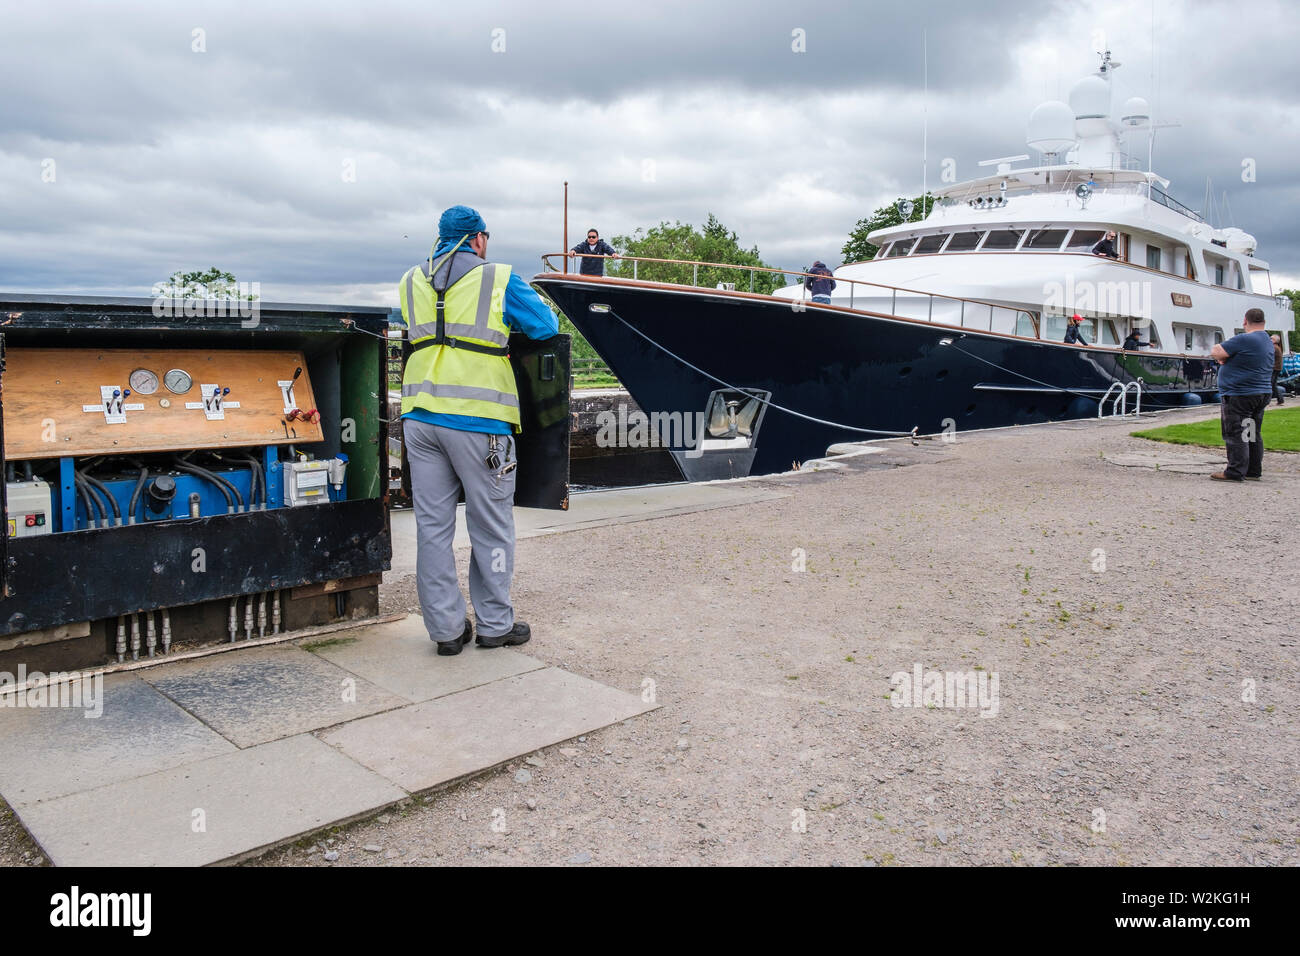 'Lady Rose' passing through Muirtown Locks, Caledonian Canal, Inverness. Lock keeper at lock gate controls. - Stock Image